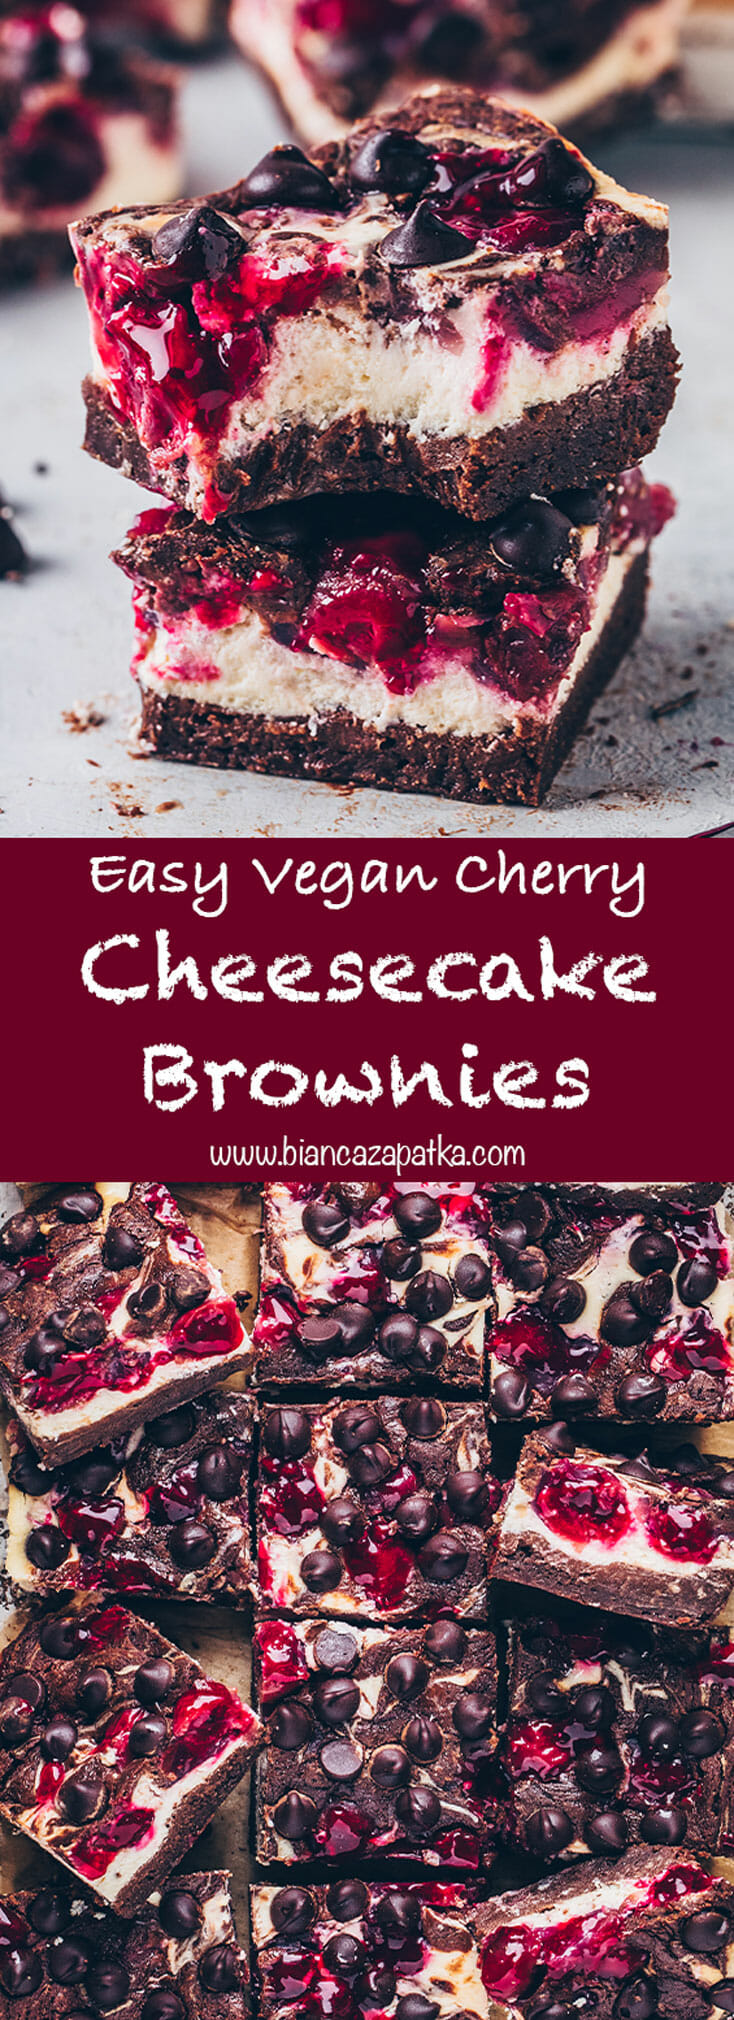 Cherry Cheesecake Brownies (chocolate cake bars)